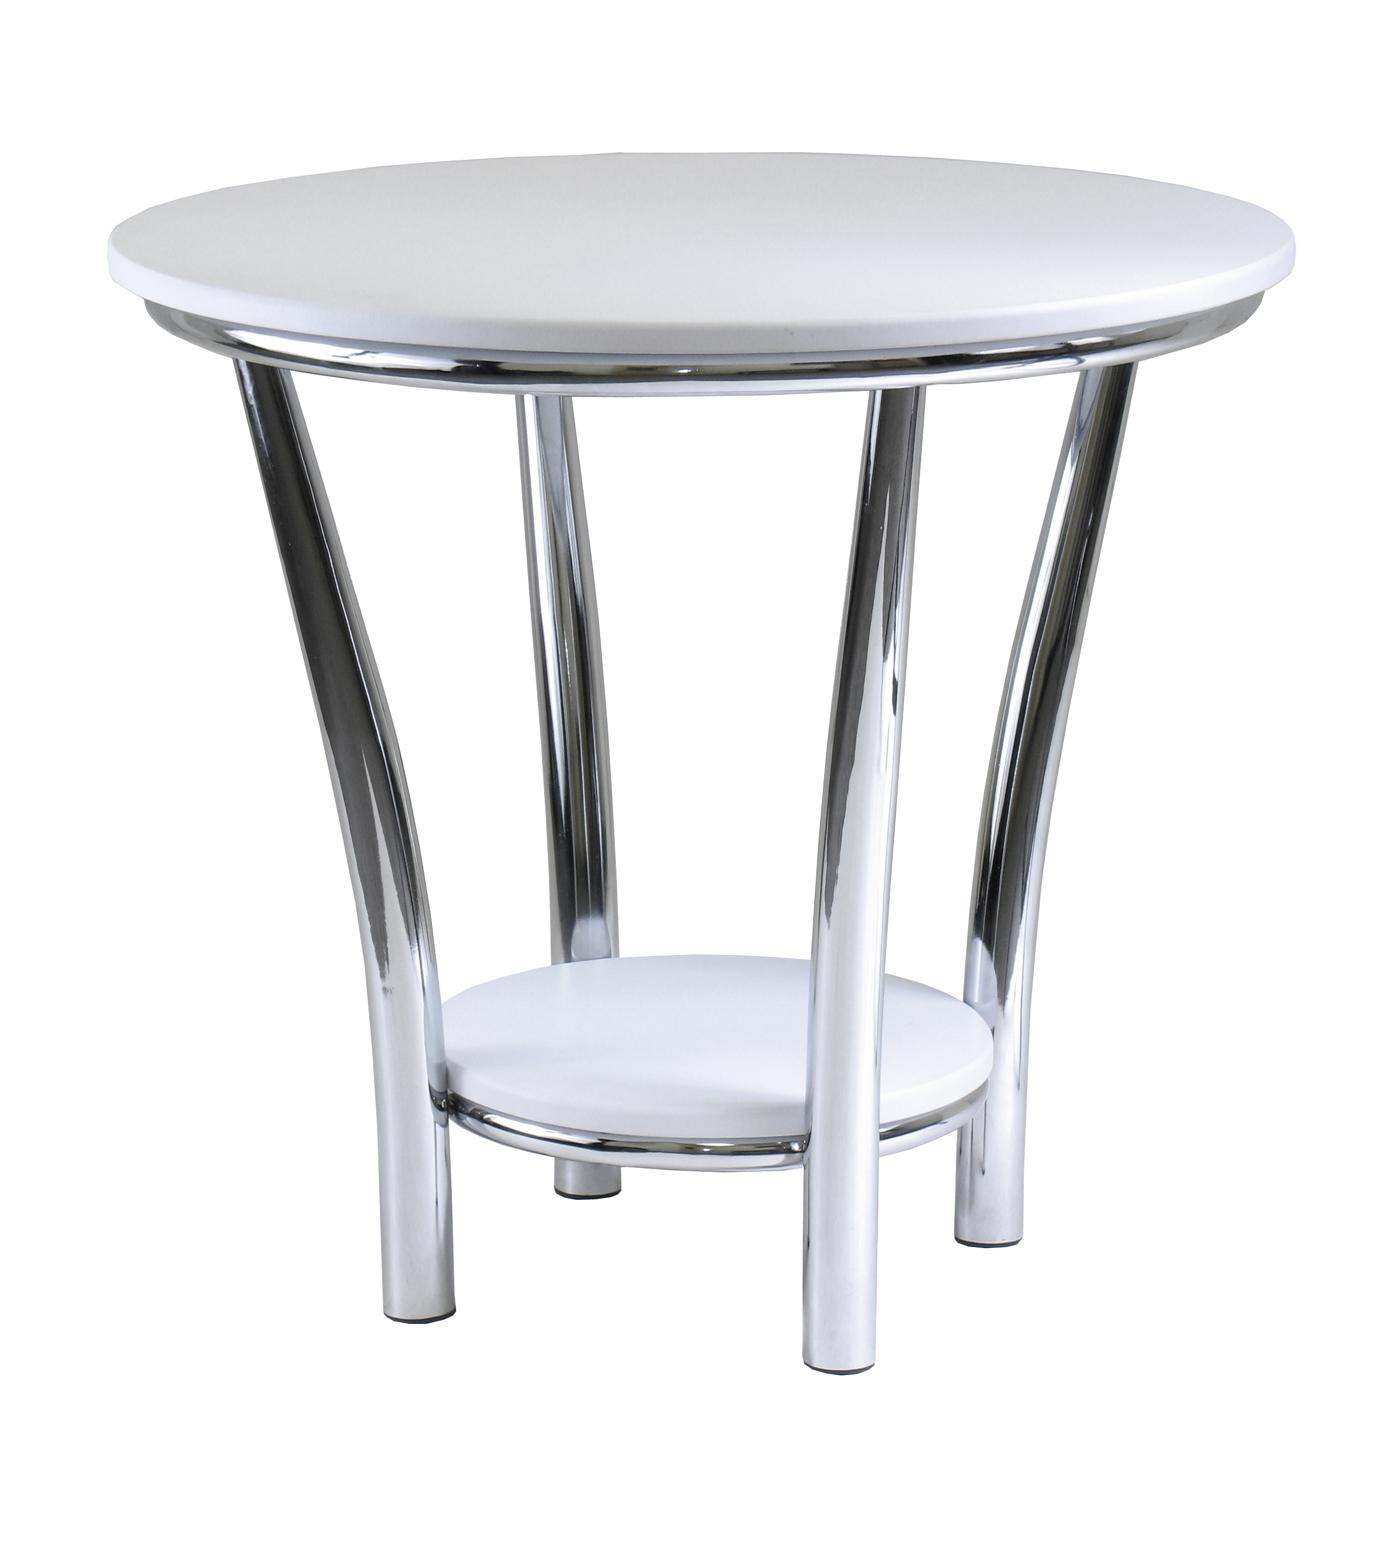 endearing white round end table chrome metal base wod top and shelf one bottom safavieh janika accent off full size tables rustic reclaimed wood clearance wicker outdoor furniture